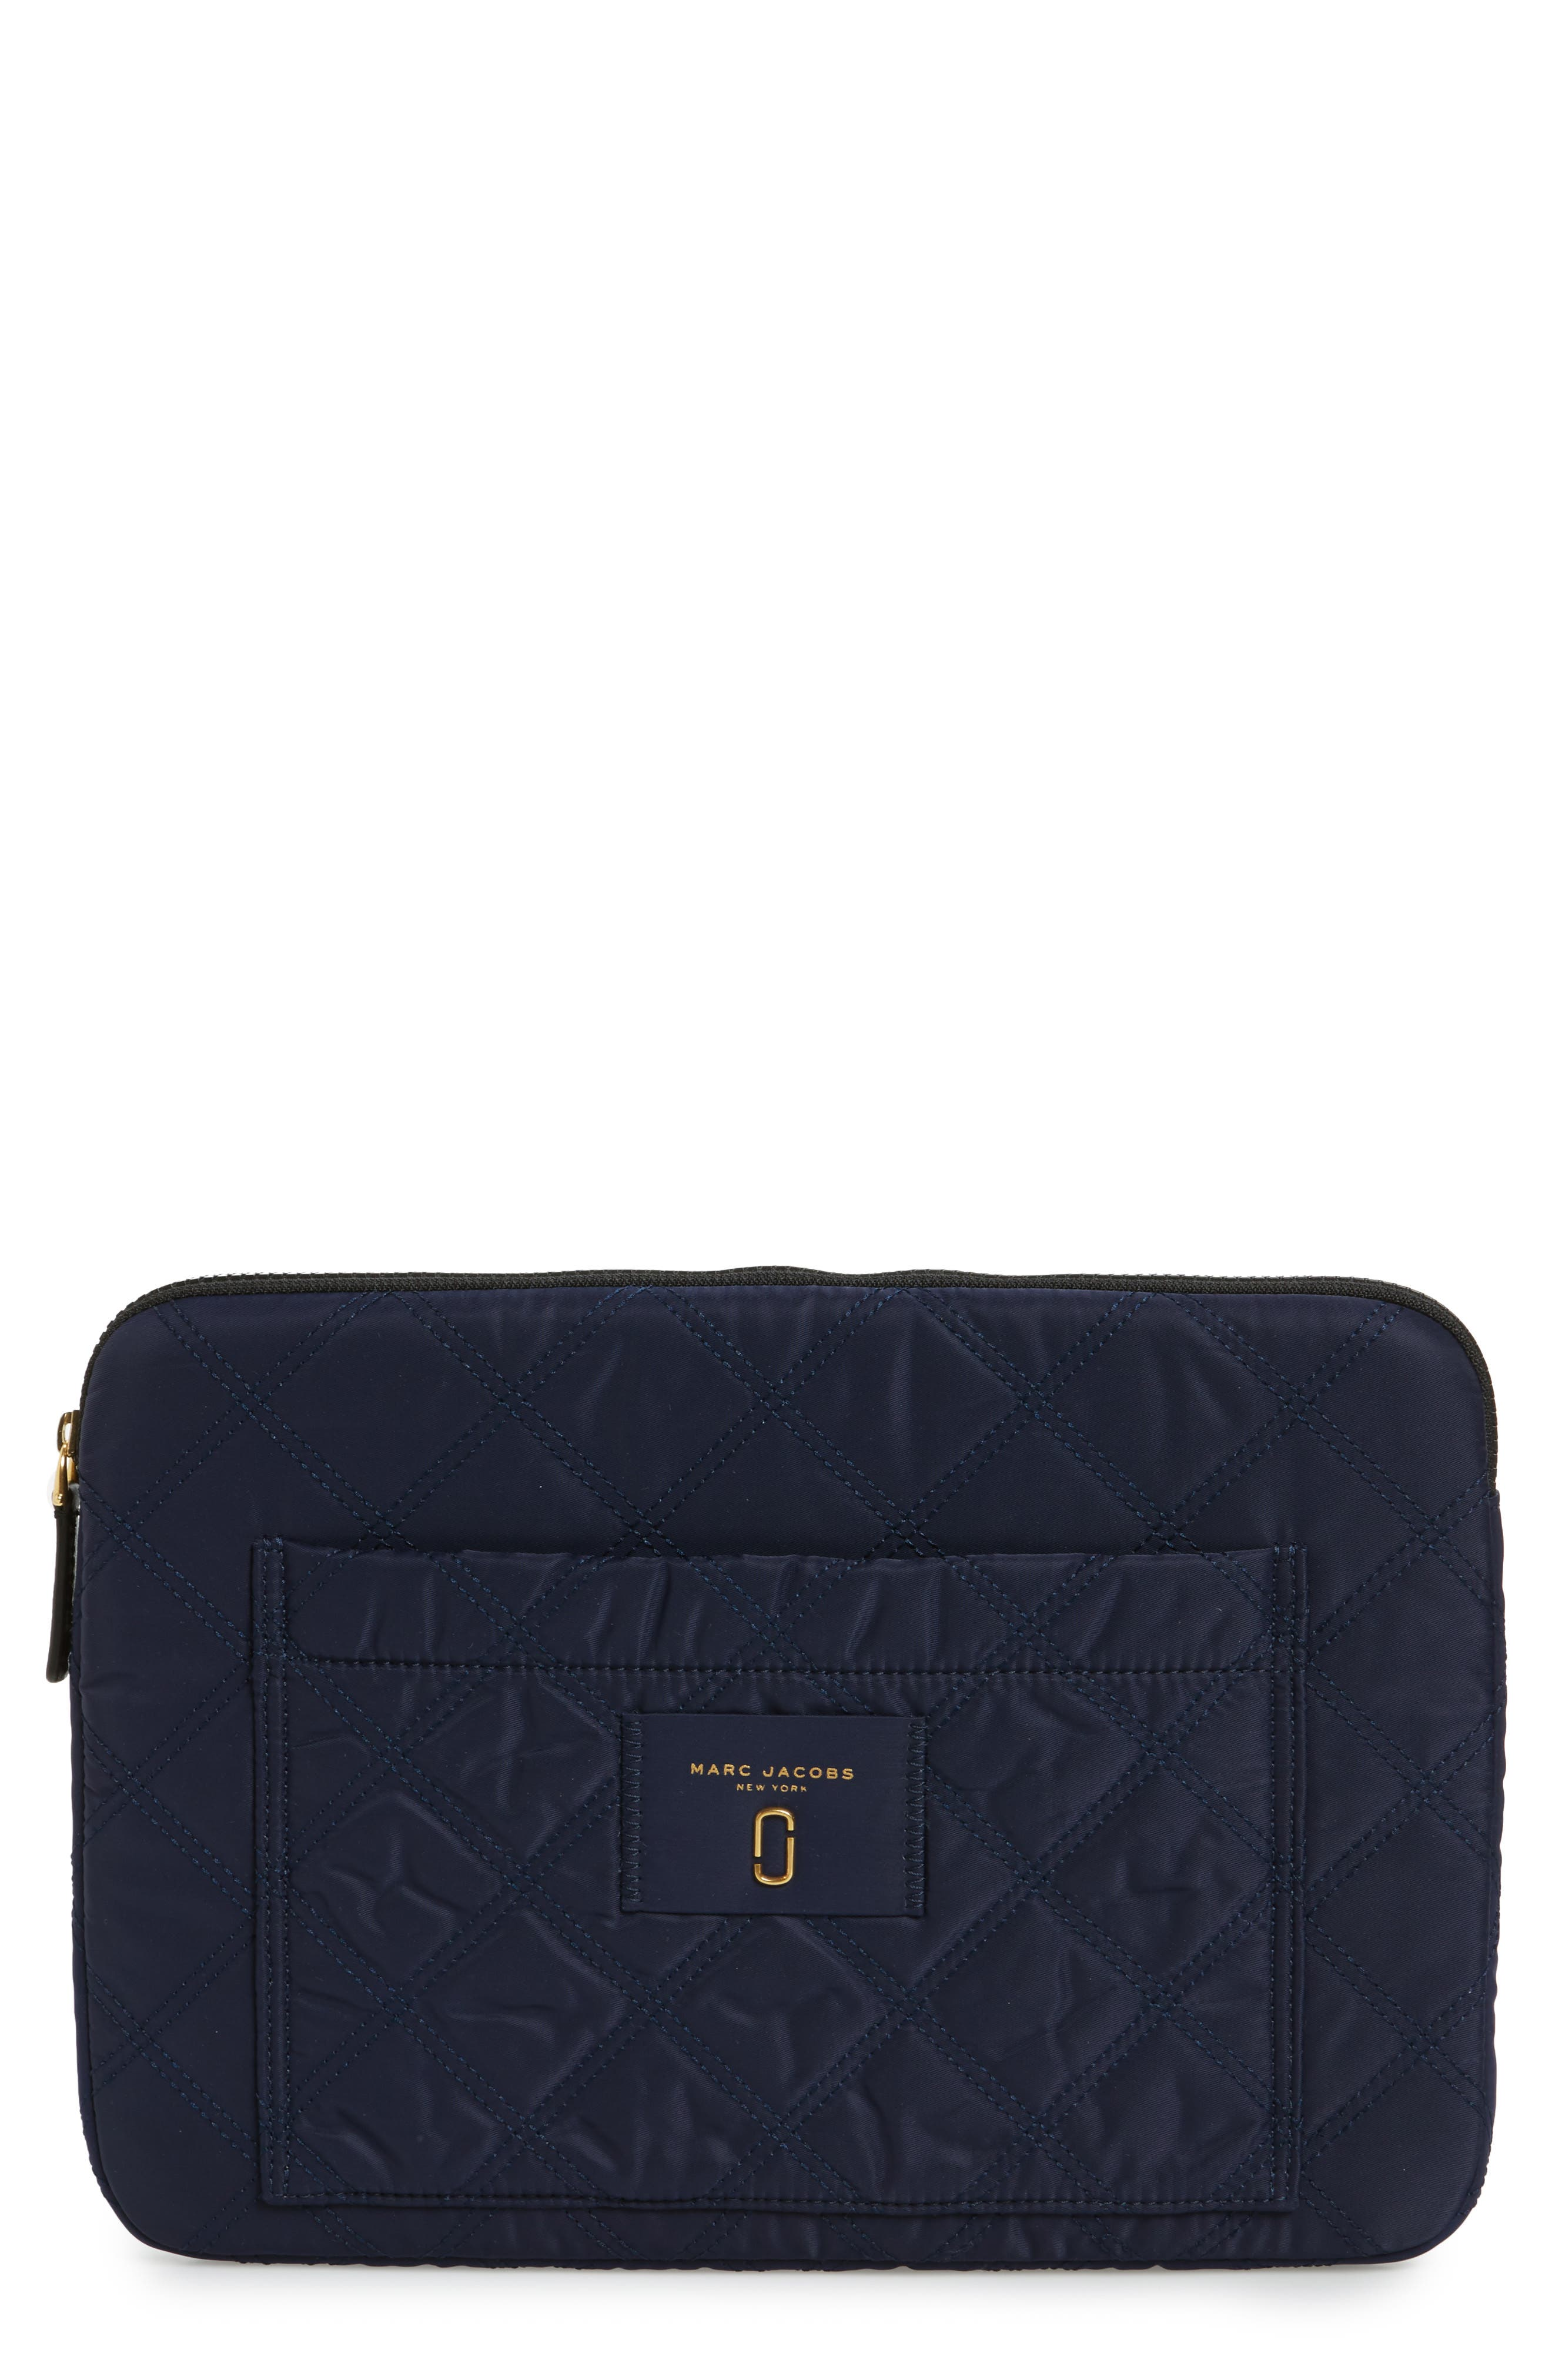 6792357769b5 Buy marc jacobs laptop sleeve > OFF56% Discounted